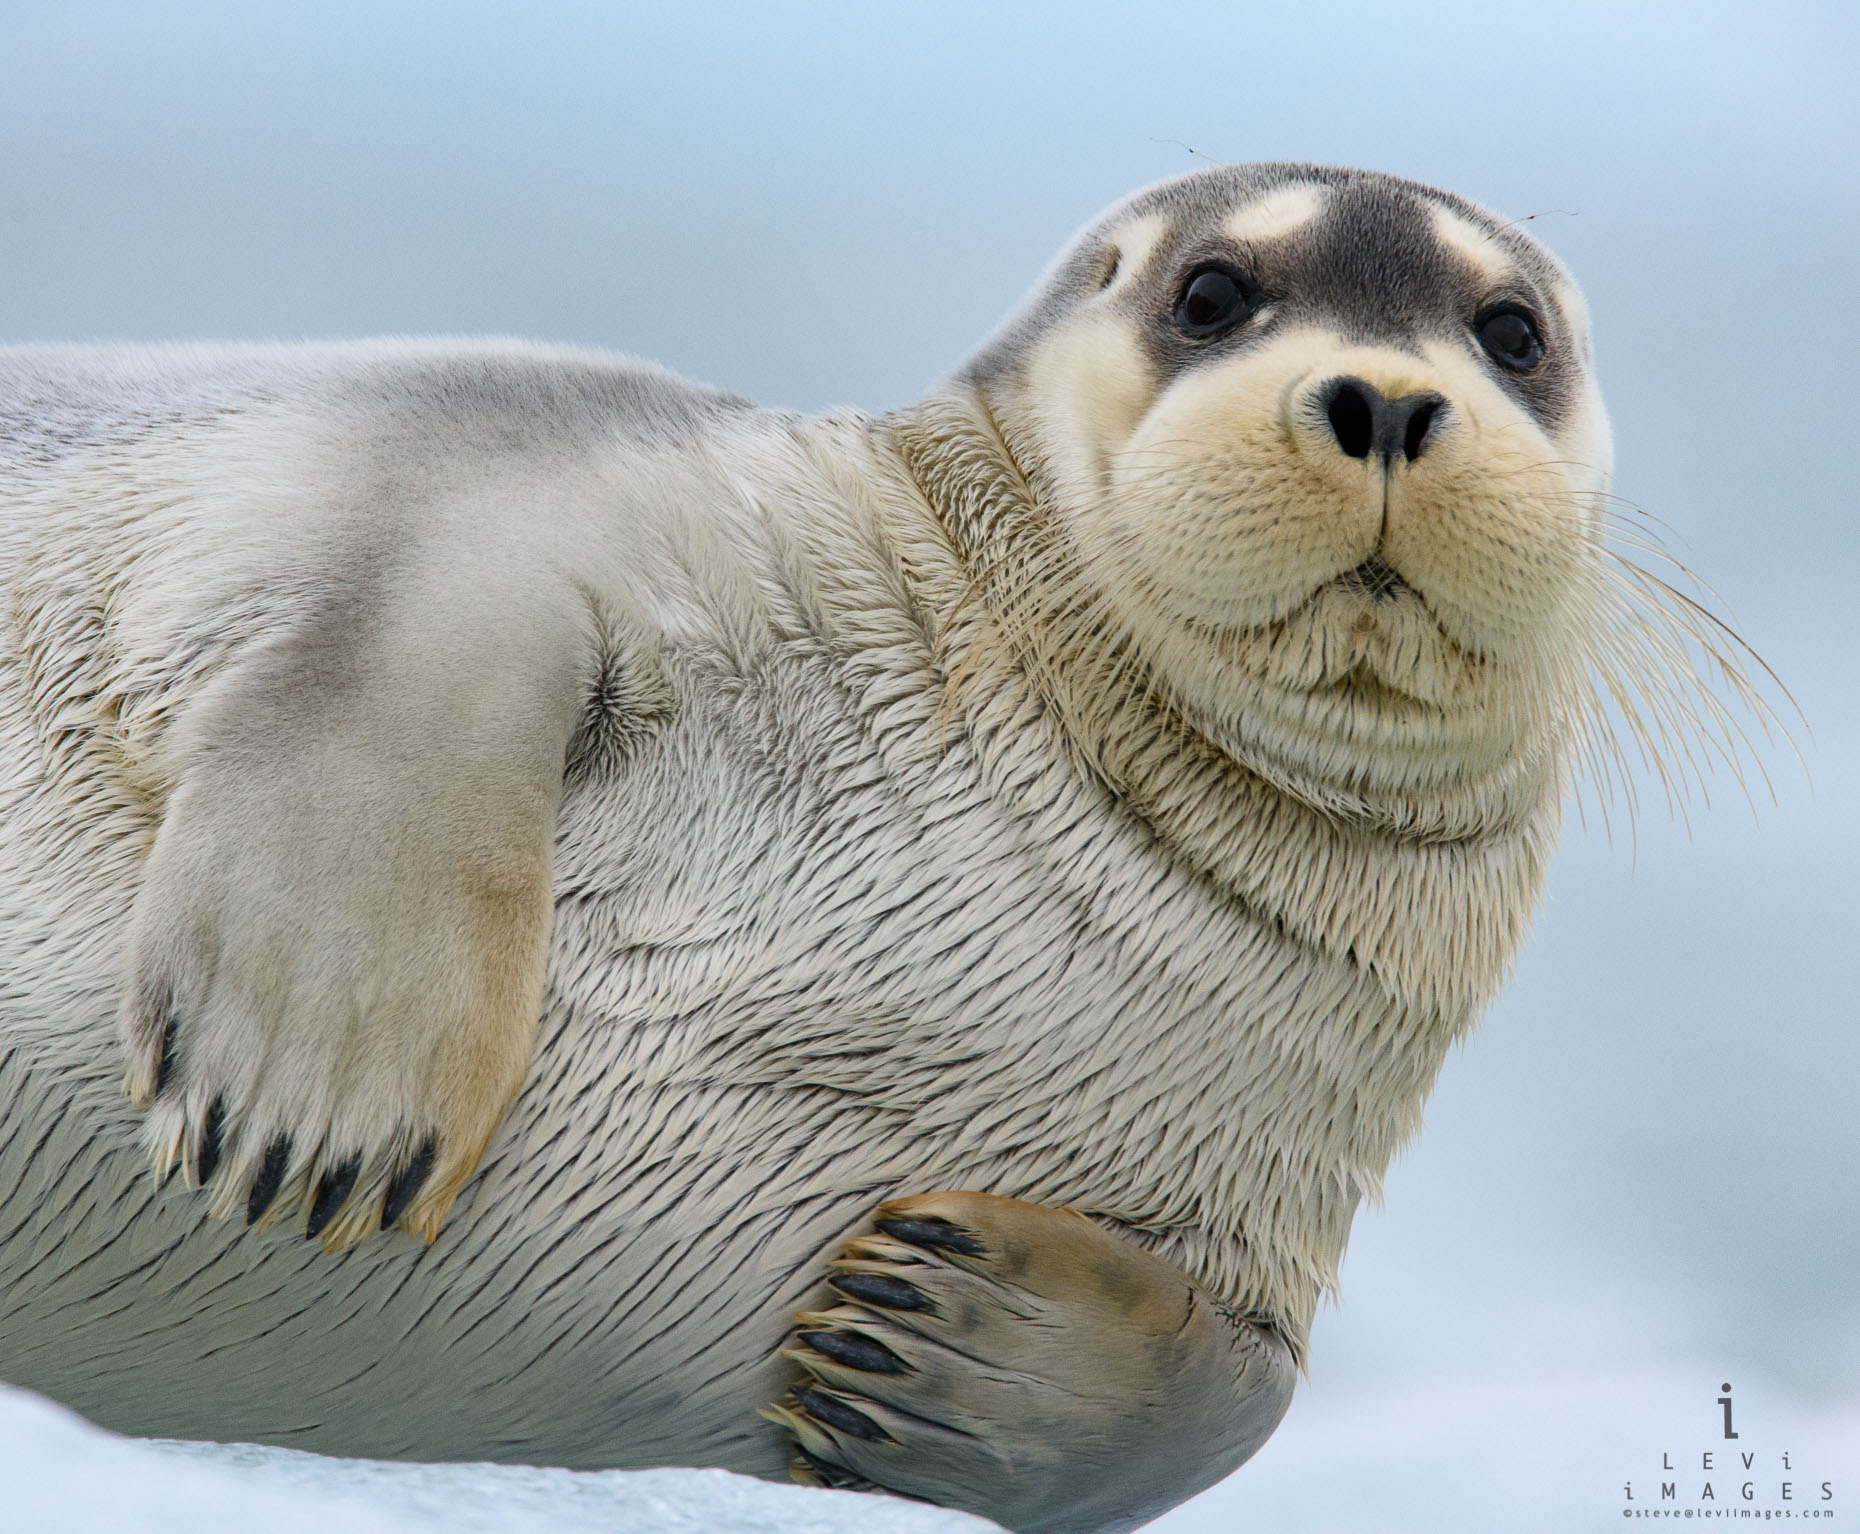 Bearded seal (Erignathus barbatus) portrait. Svalbard, Norway